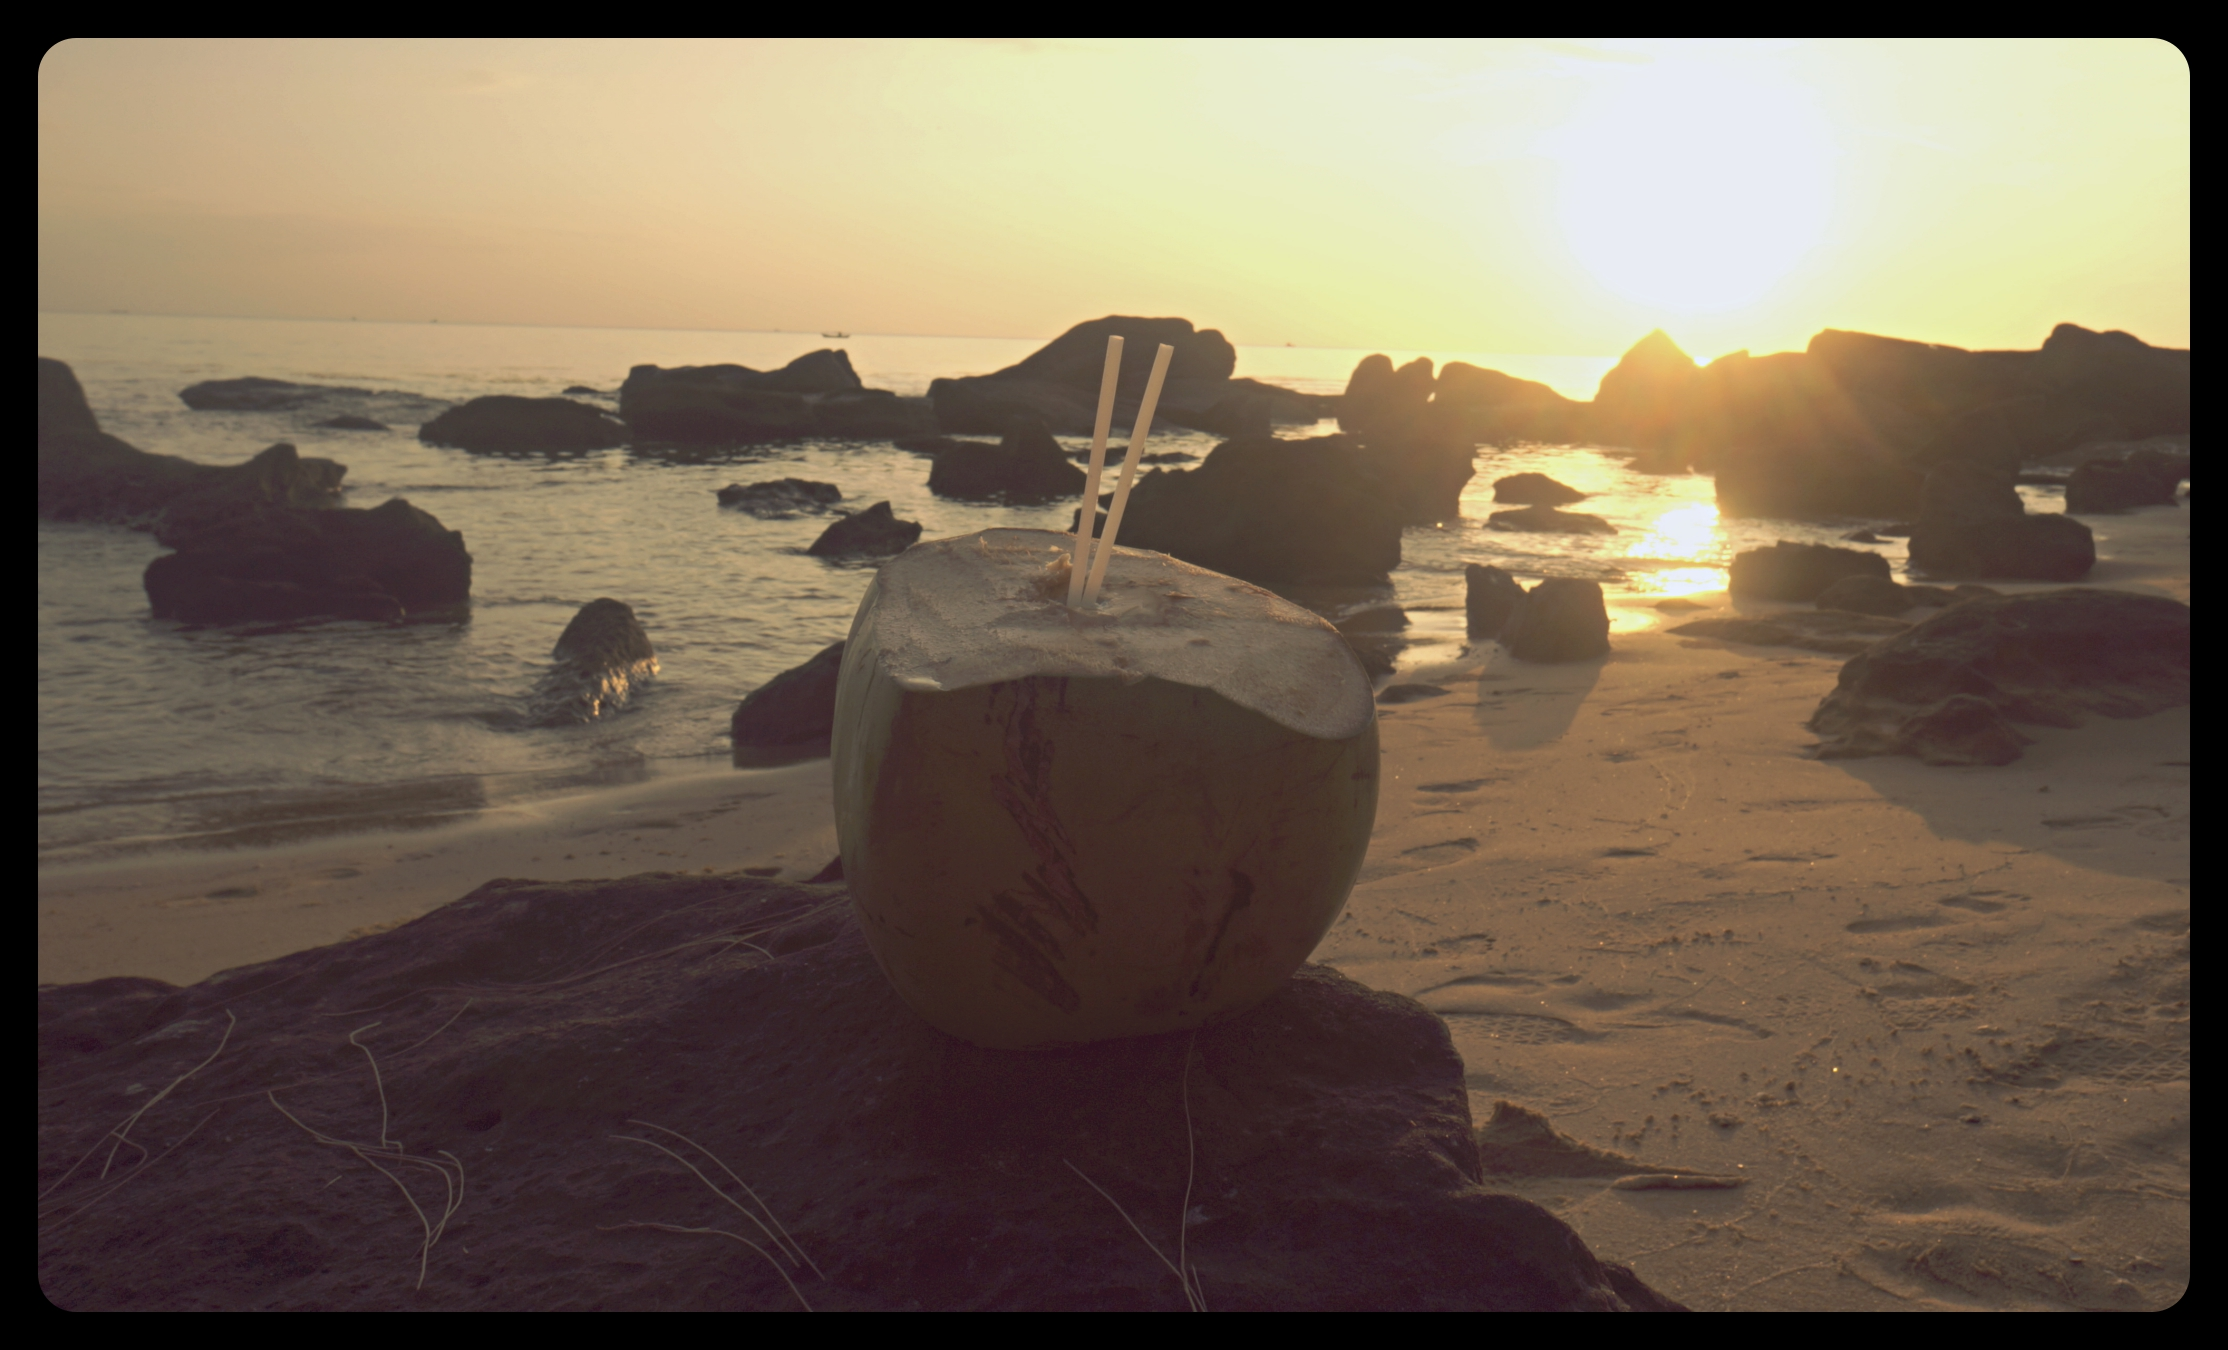 Fresh coconut at sunset